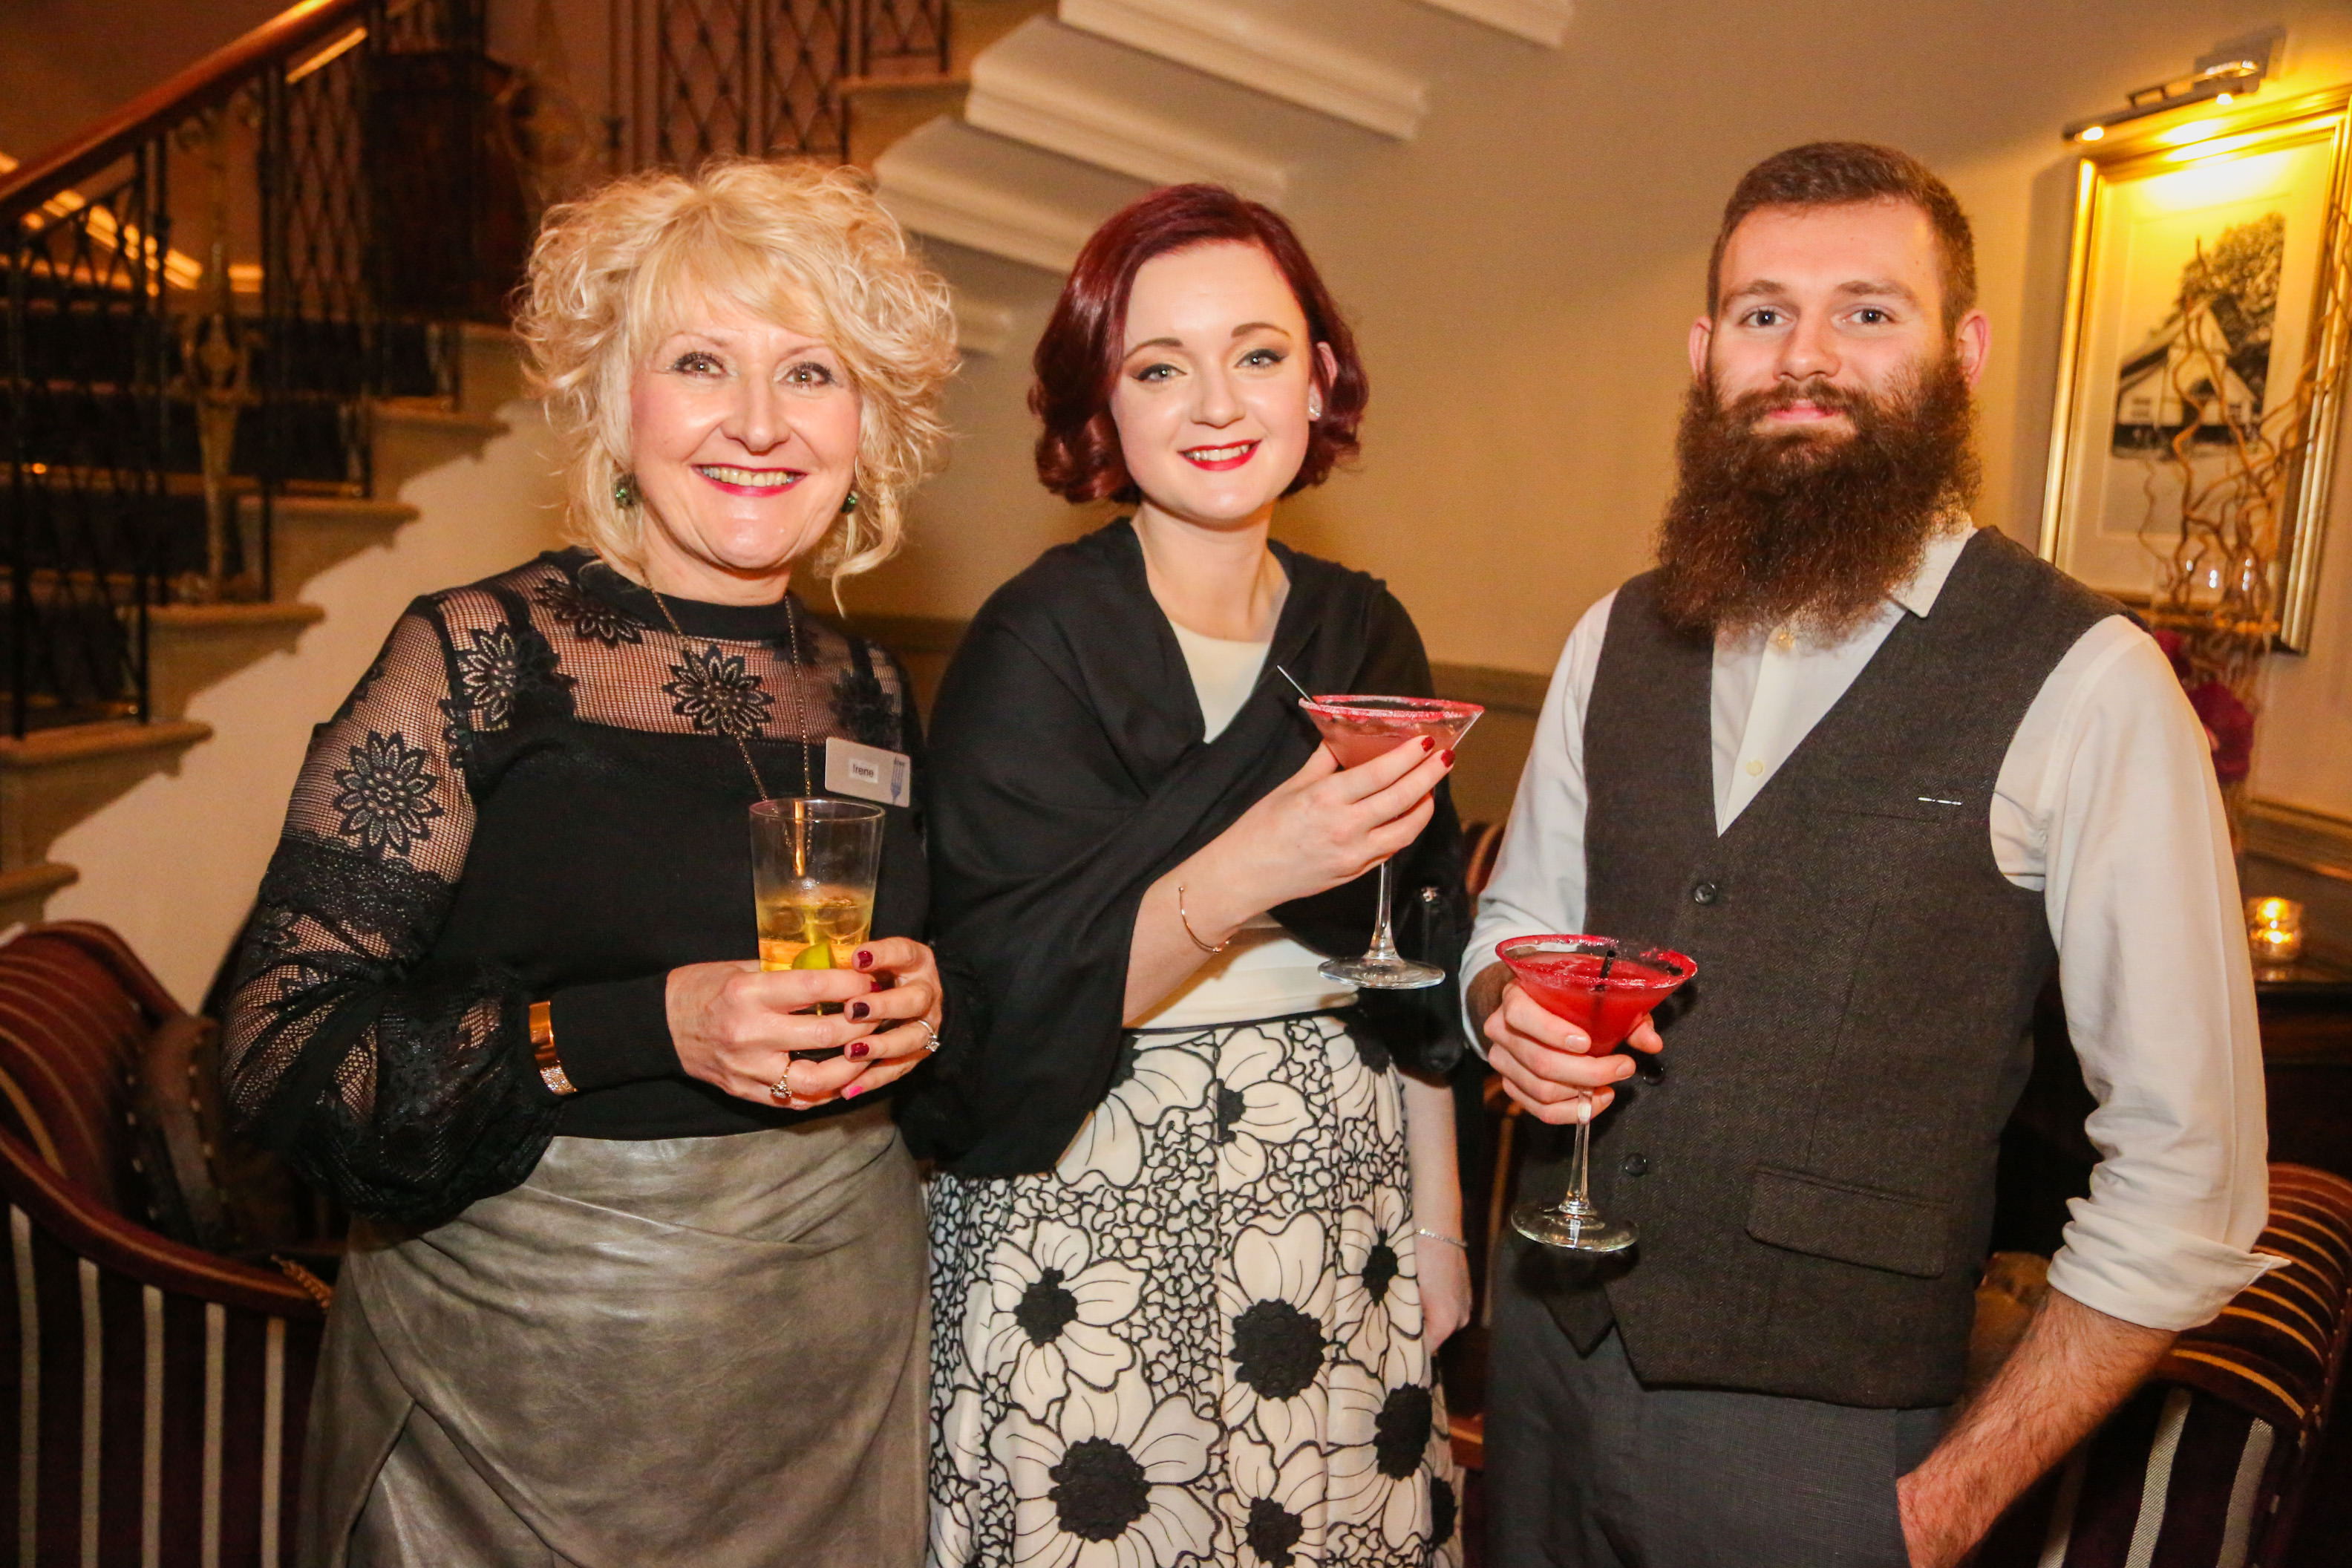 Jane & Ben, Owners of New Craven Hall with Irene from Dine